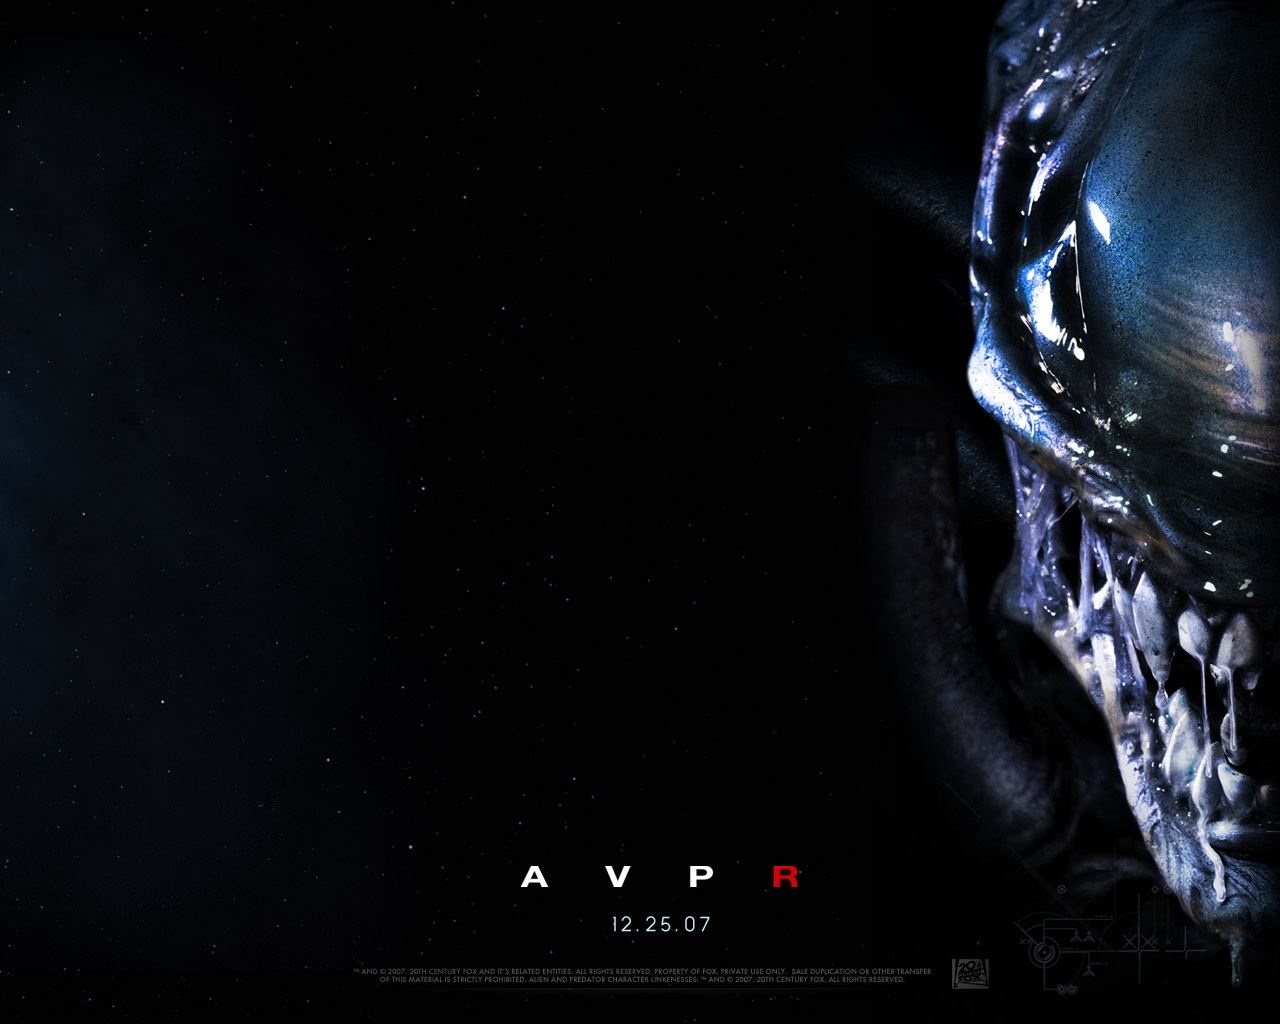 Alien Wallpapers Alien Myspace Backgrounds Alien Backgrounds For 1280x1024